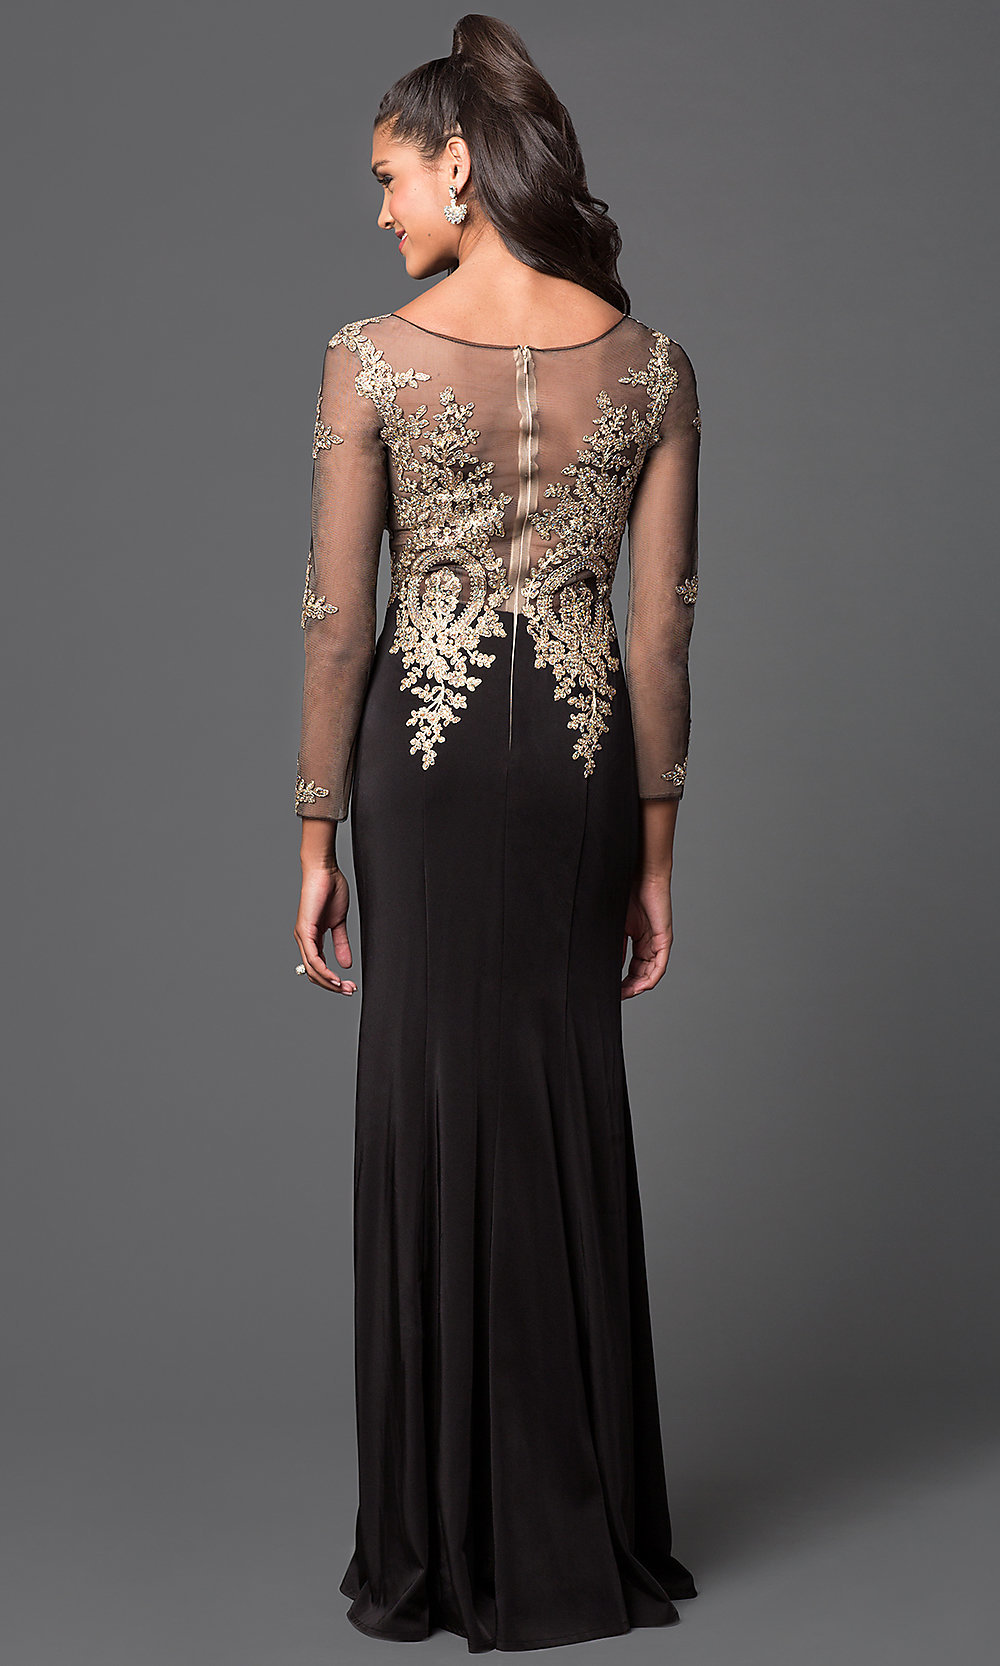 Black dress gold lace - Hover To Zoom